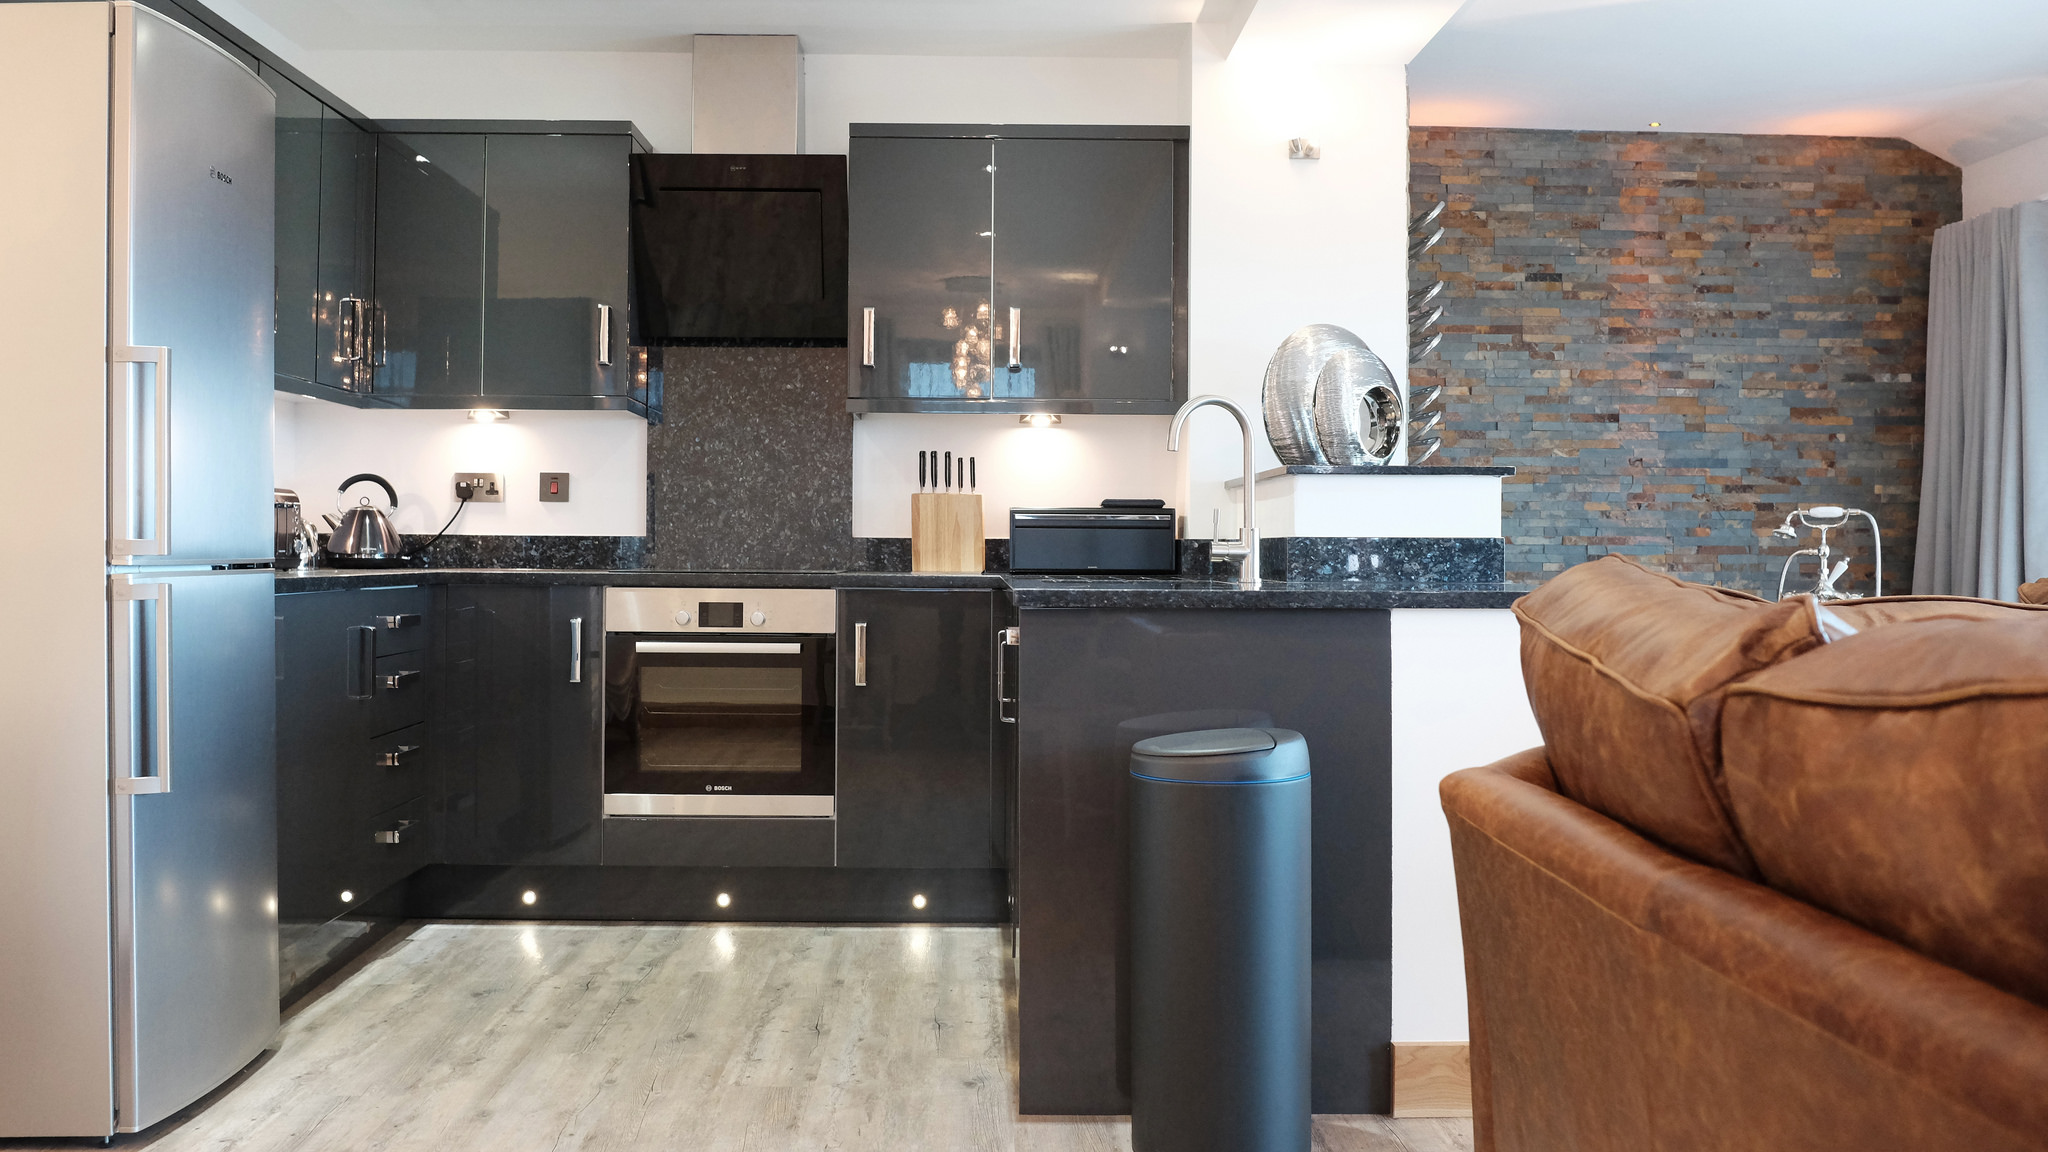 Open plan layout with grey kitchen and granite worktops